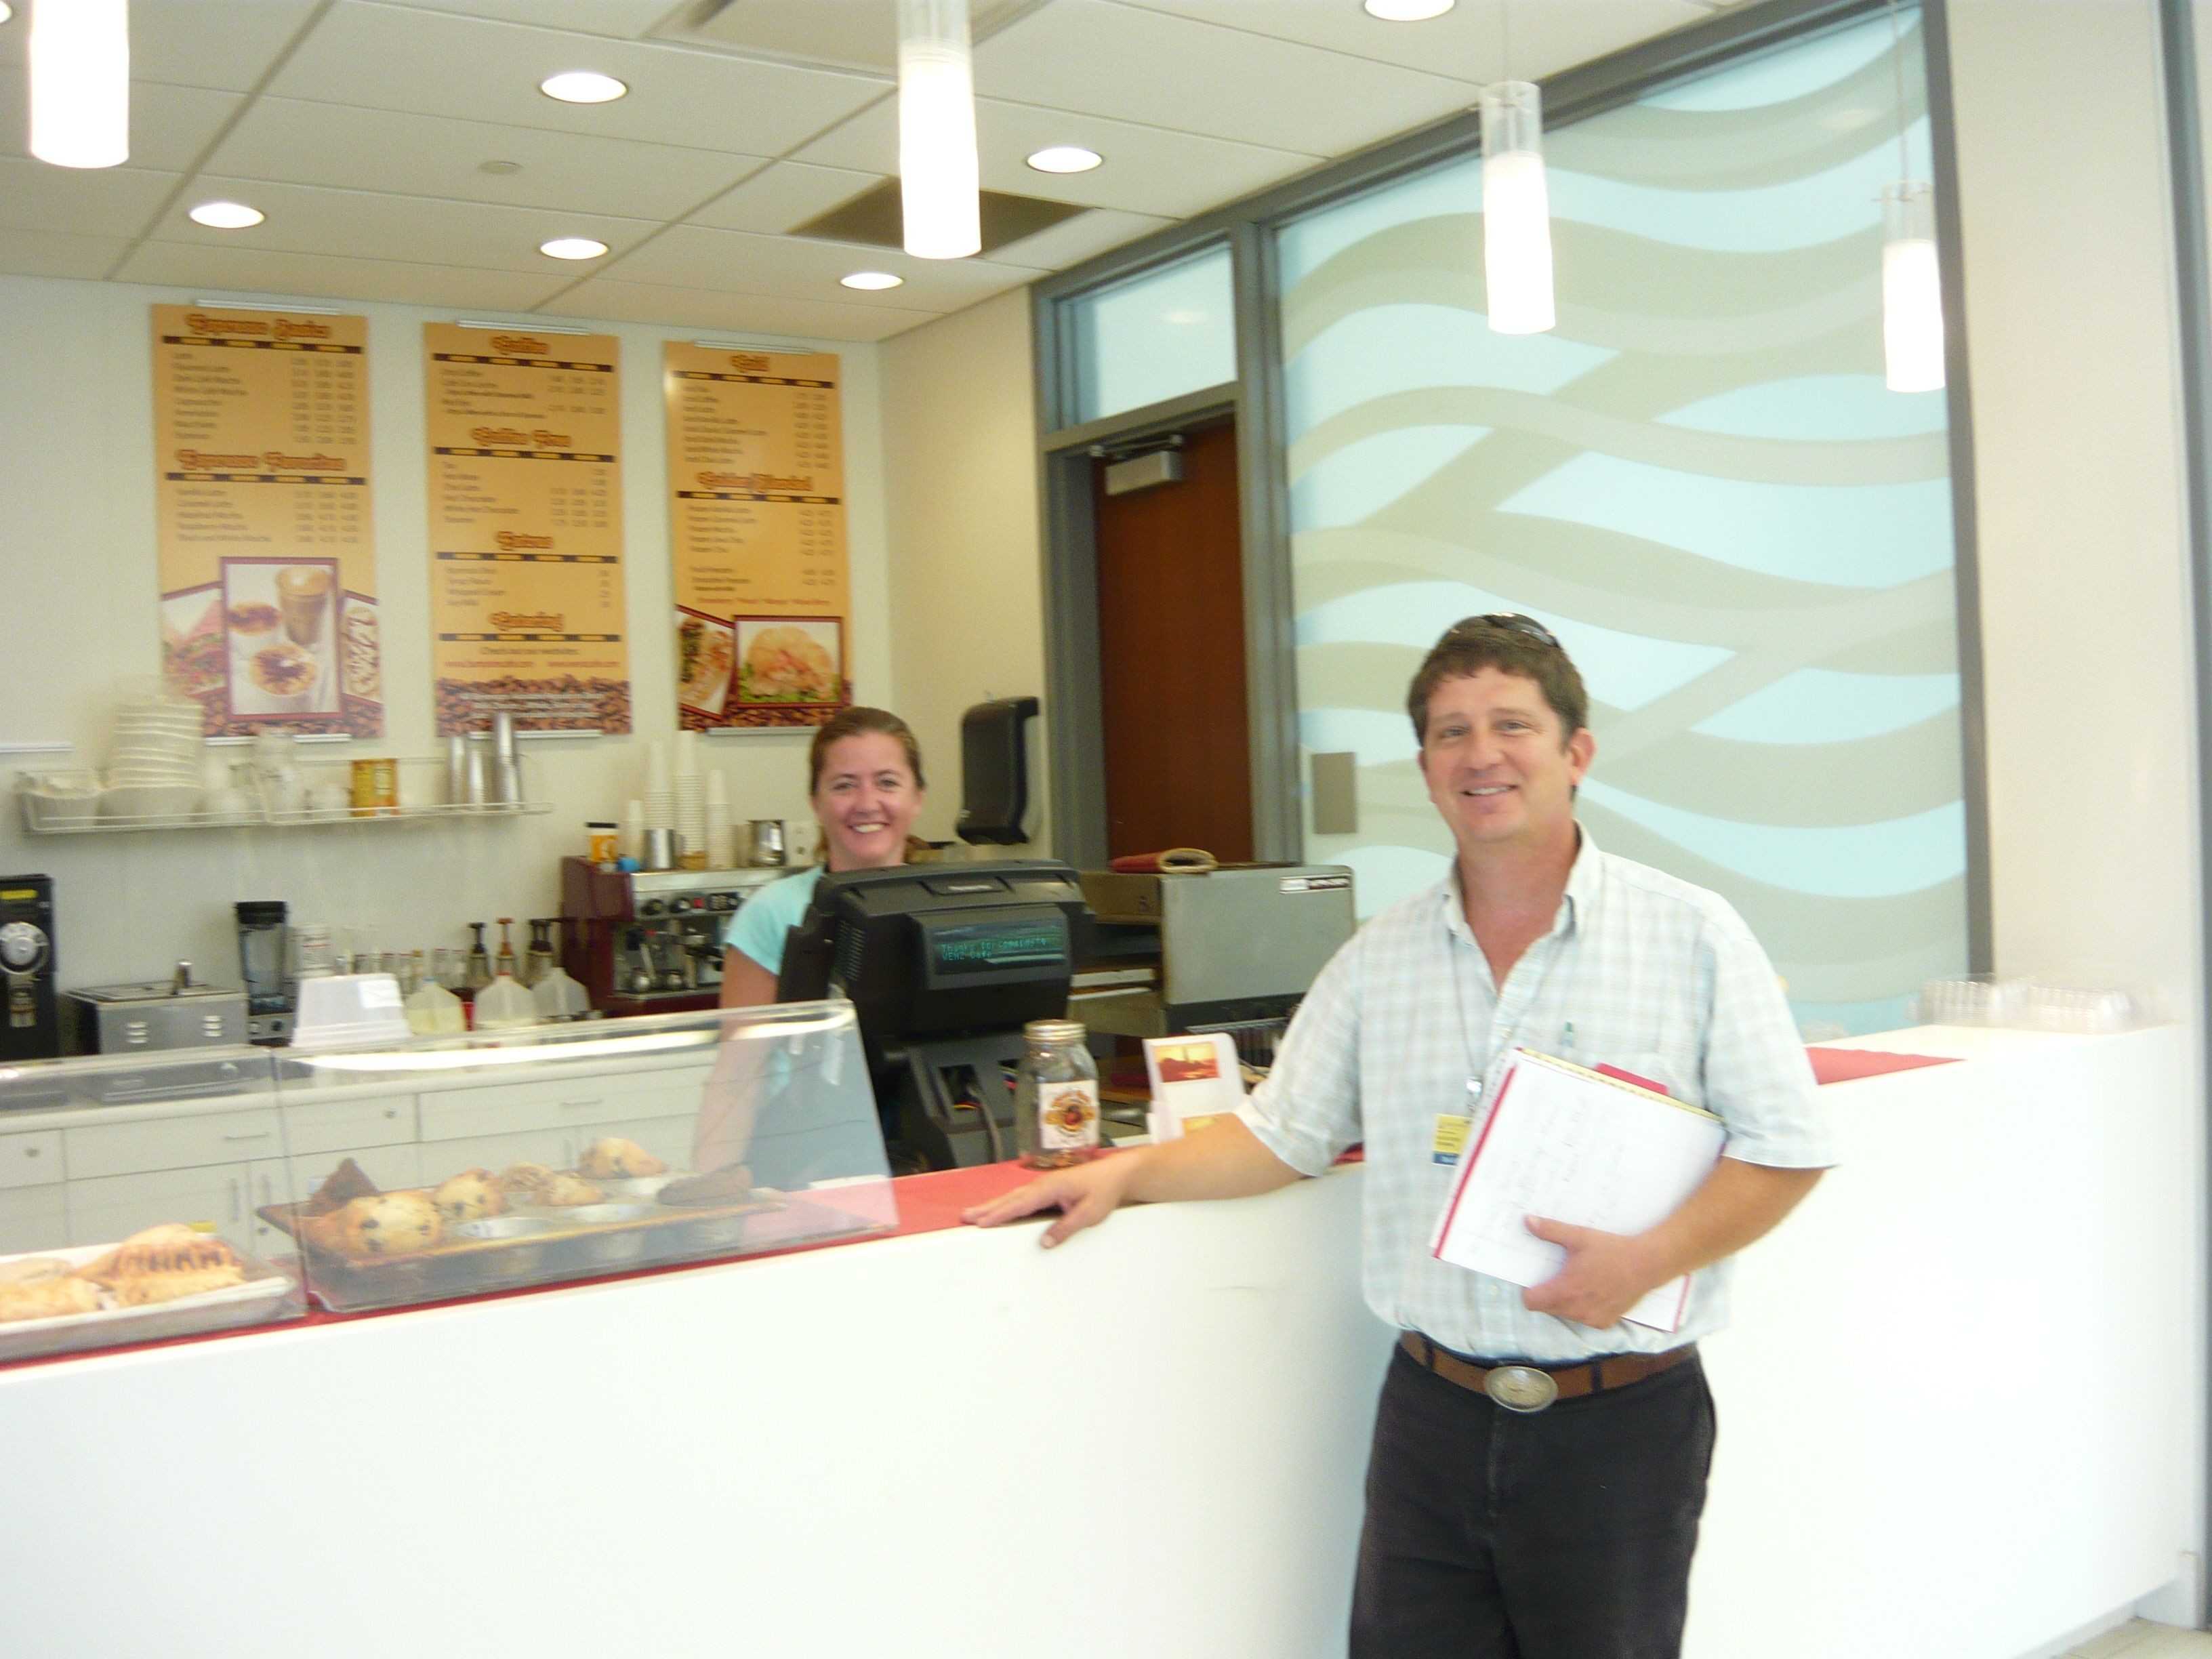 At daily grind client on the 1st floor of johns hopkins